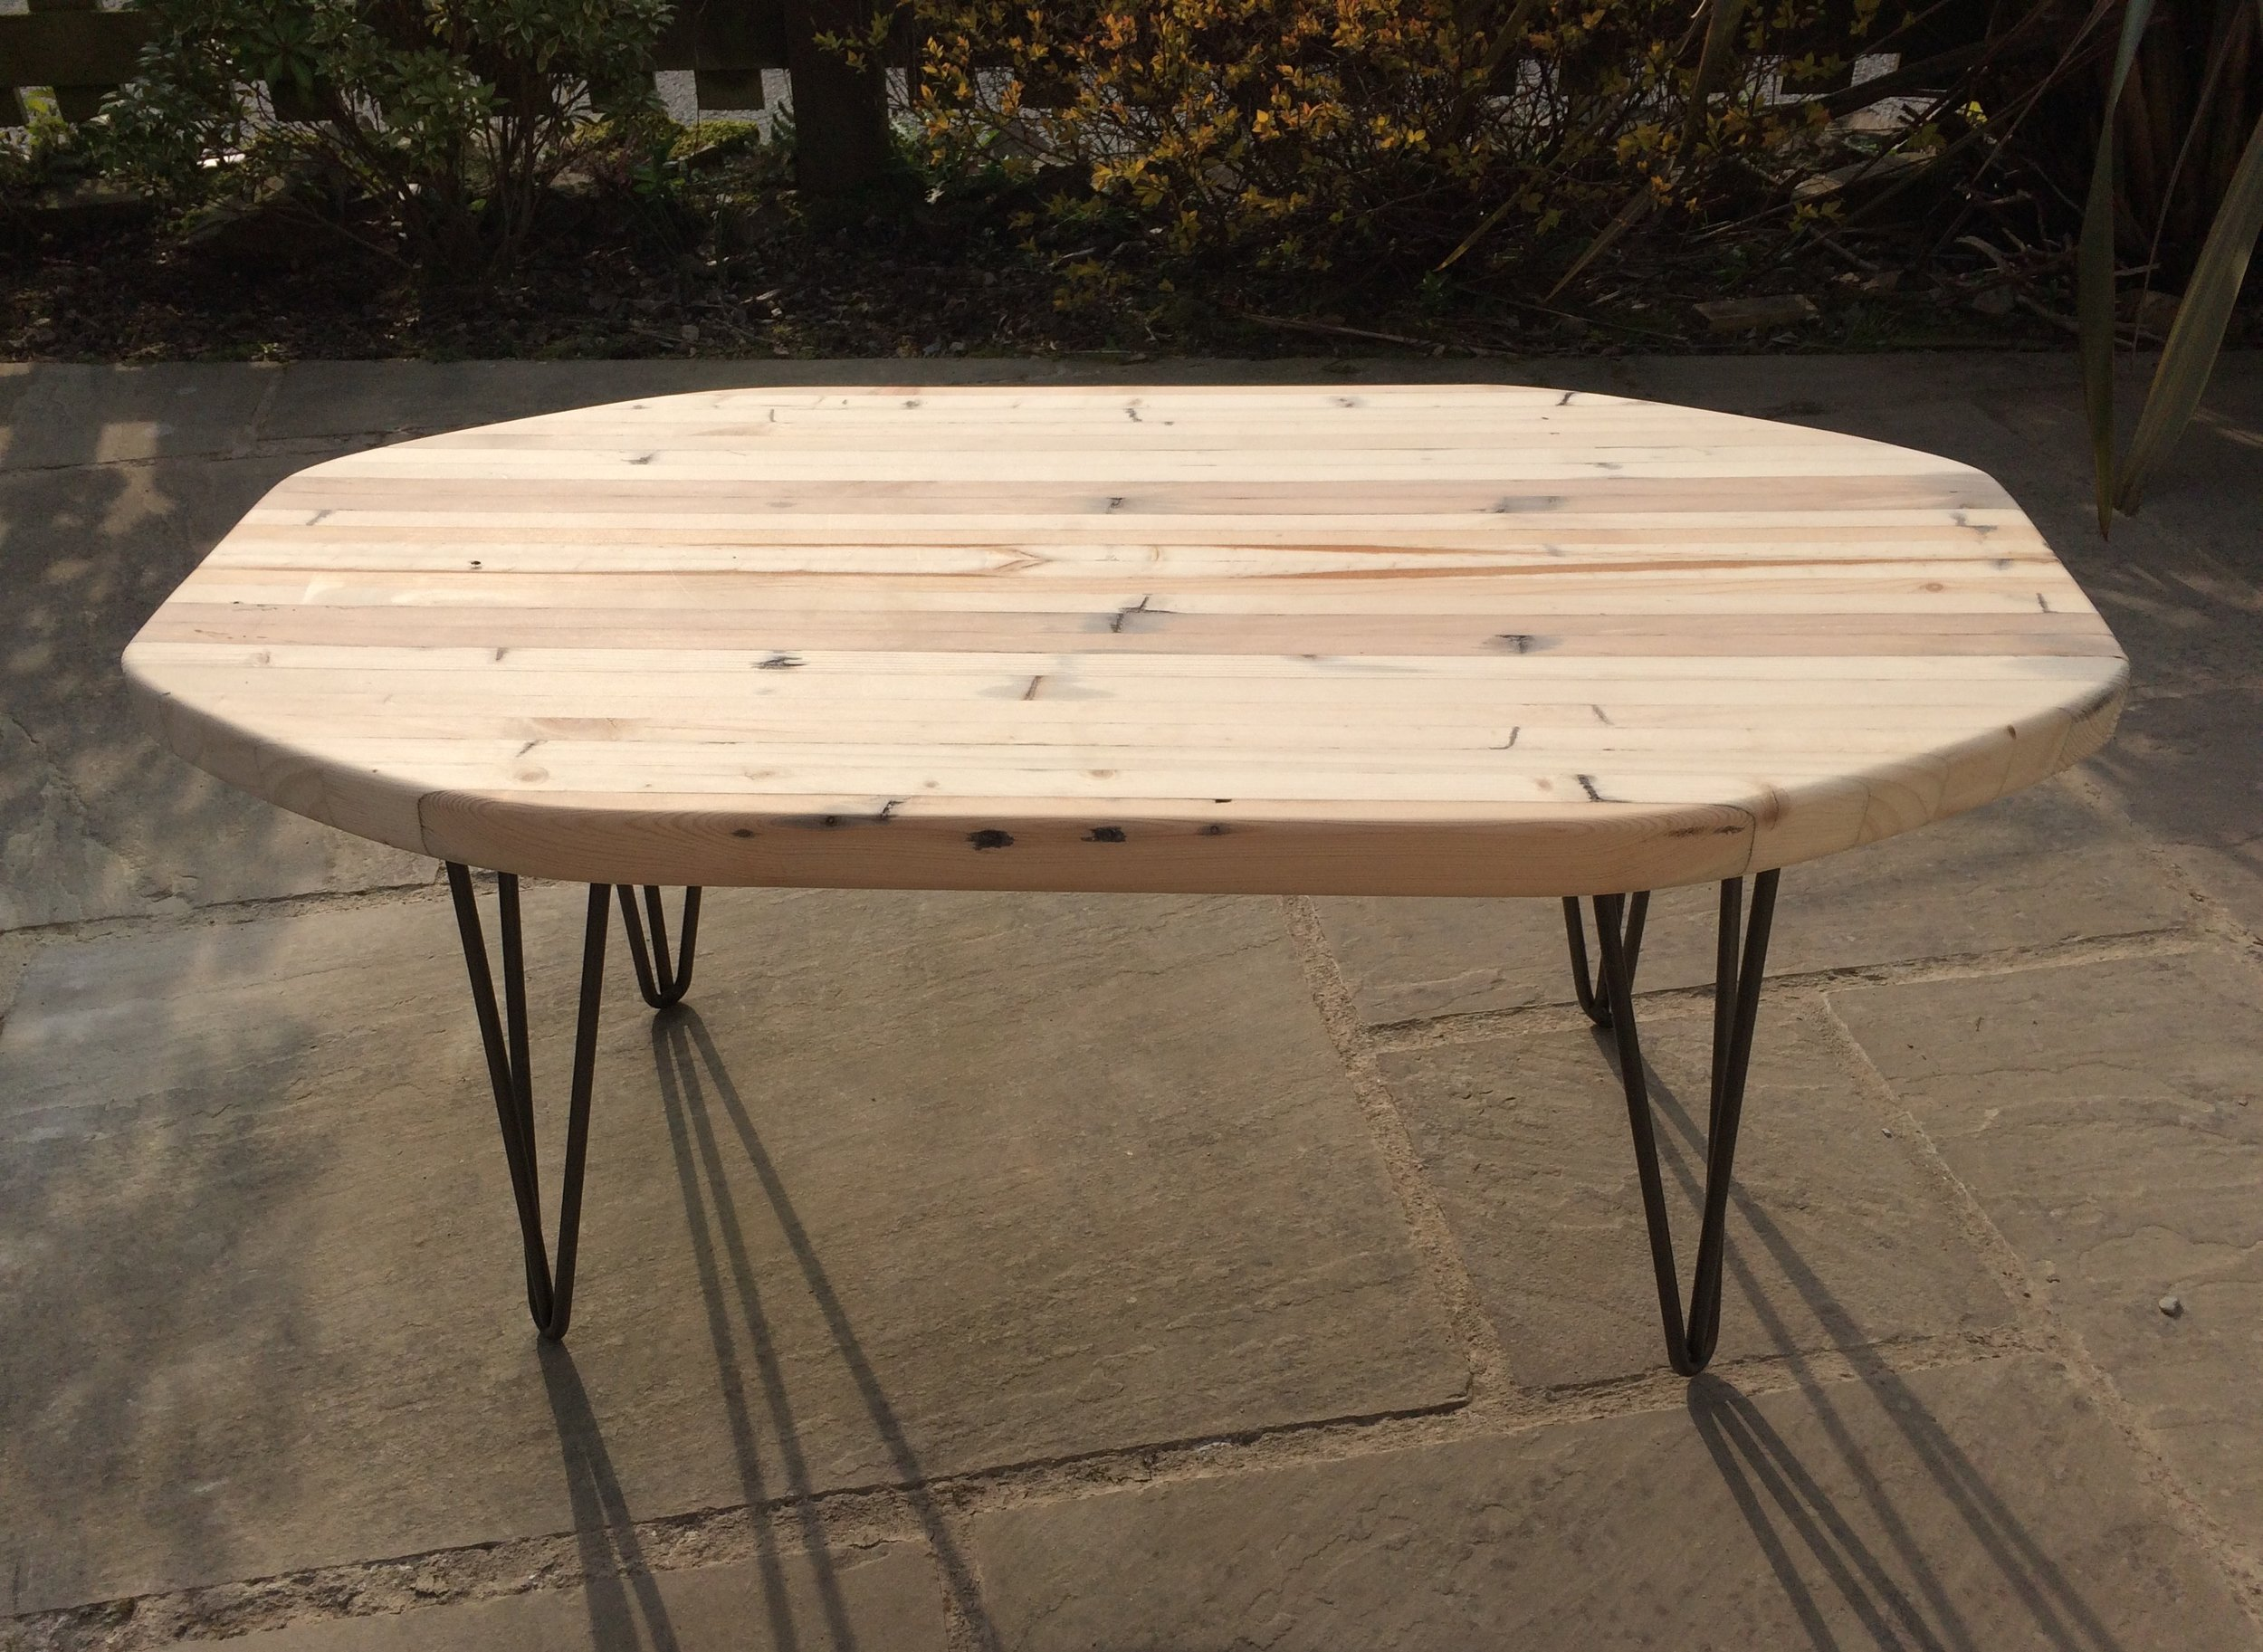 Surfstyle Coffee Table - with hairpin legs and table-top made from pallets